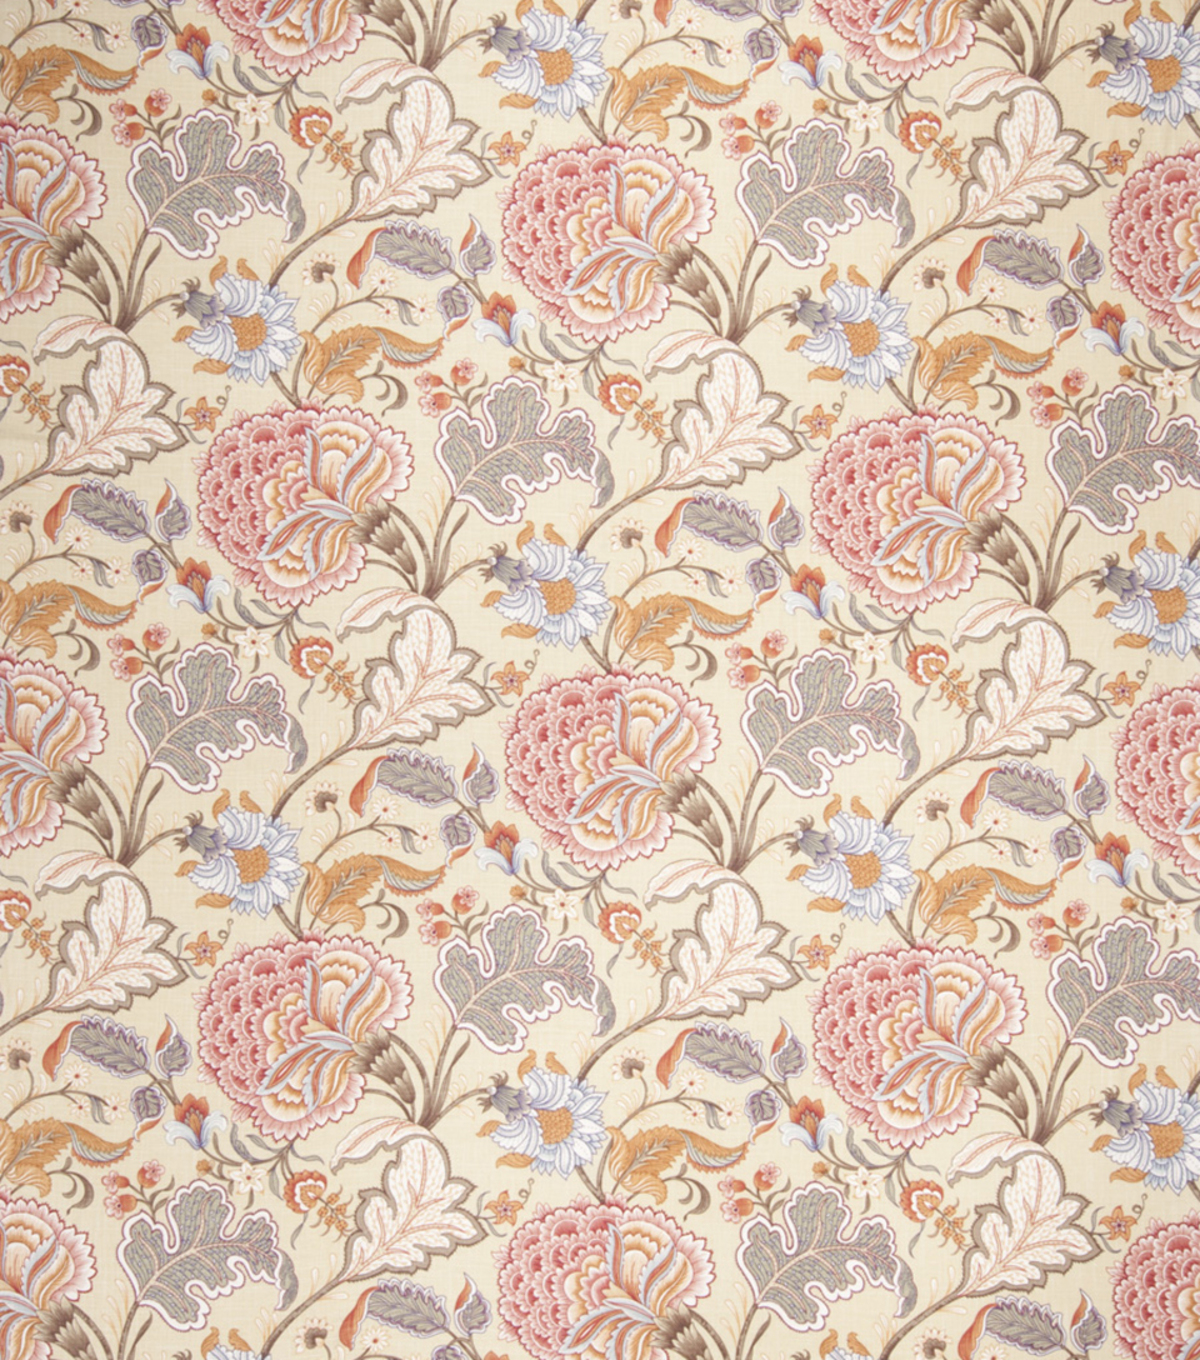 Home Decor 8\u0022x8\u0022 Fabric Swatch-Upholstery Fabric Eaton Square Blockade Clay